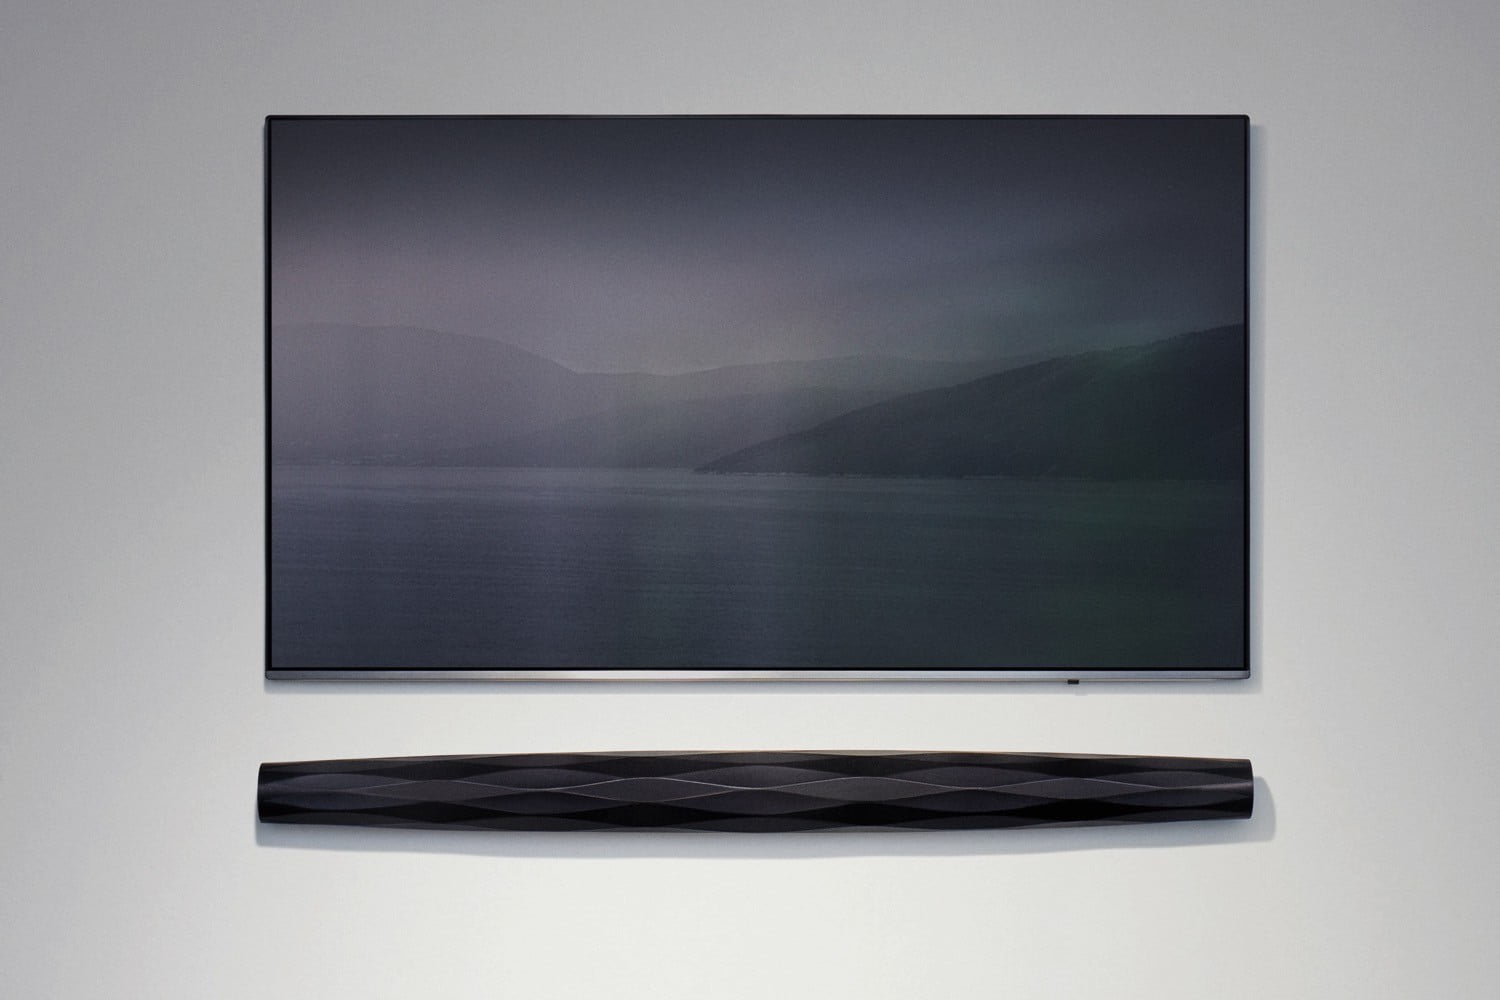 bw formation suite wireless home audio bar gallery